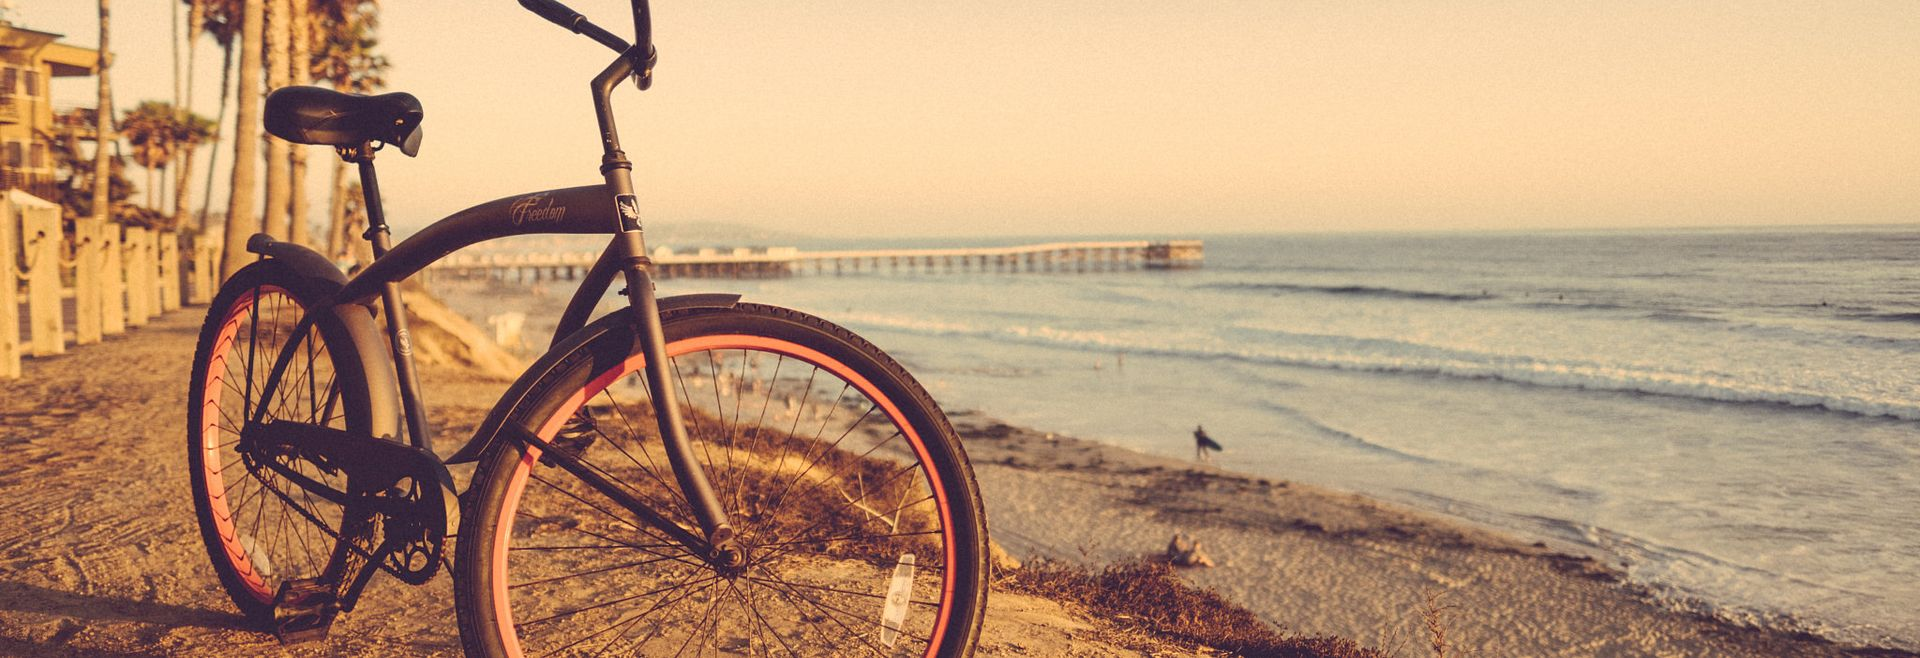 San Diego Stress Relief Beach with Bicycle | Shea Homes